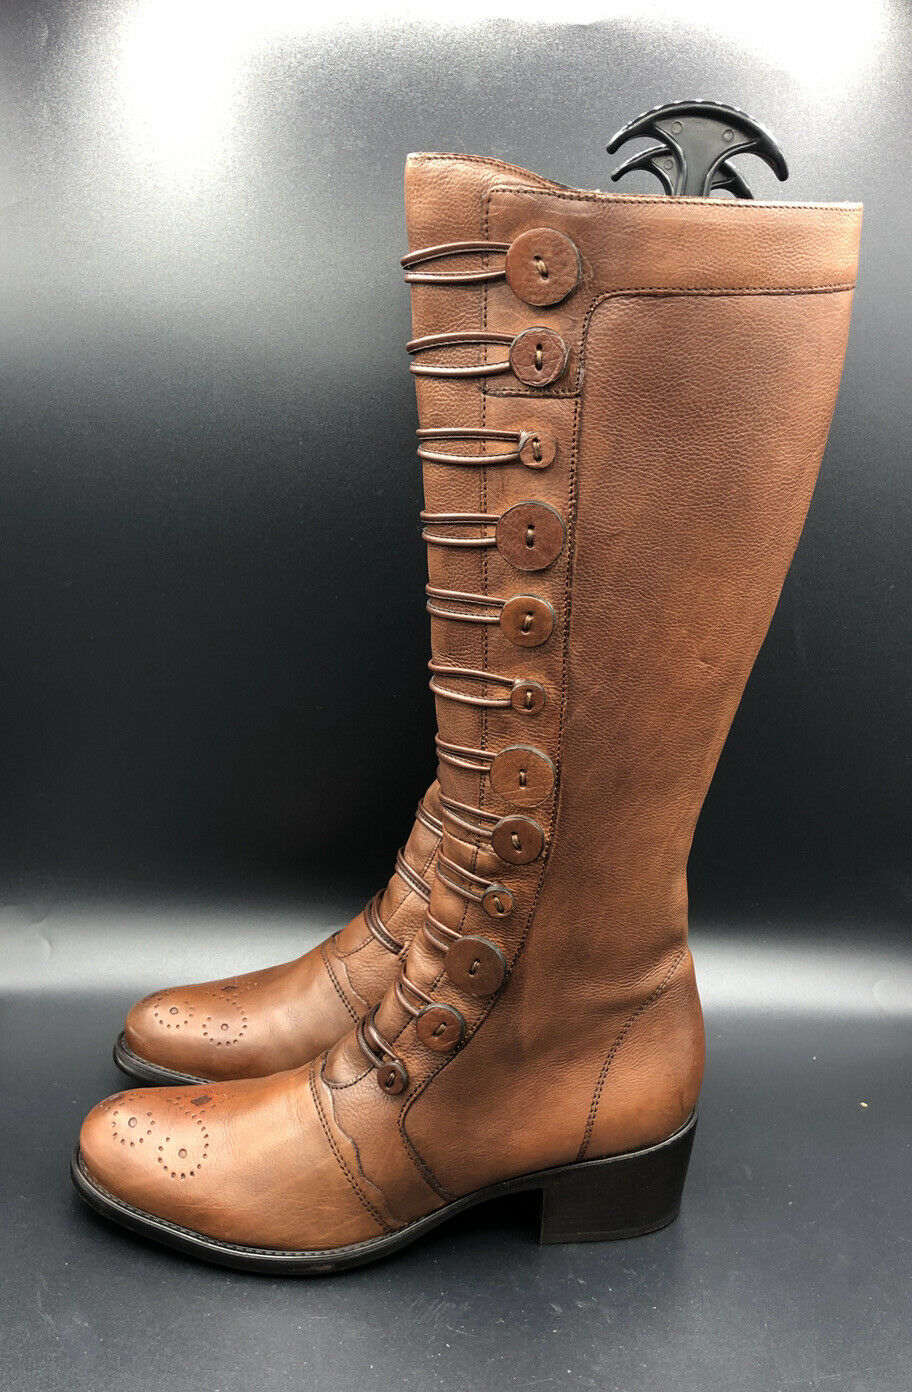 DUNE Pixie D Button Detail Knee High Heel Shoe Brown Tan Leather Boot Size 6 39